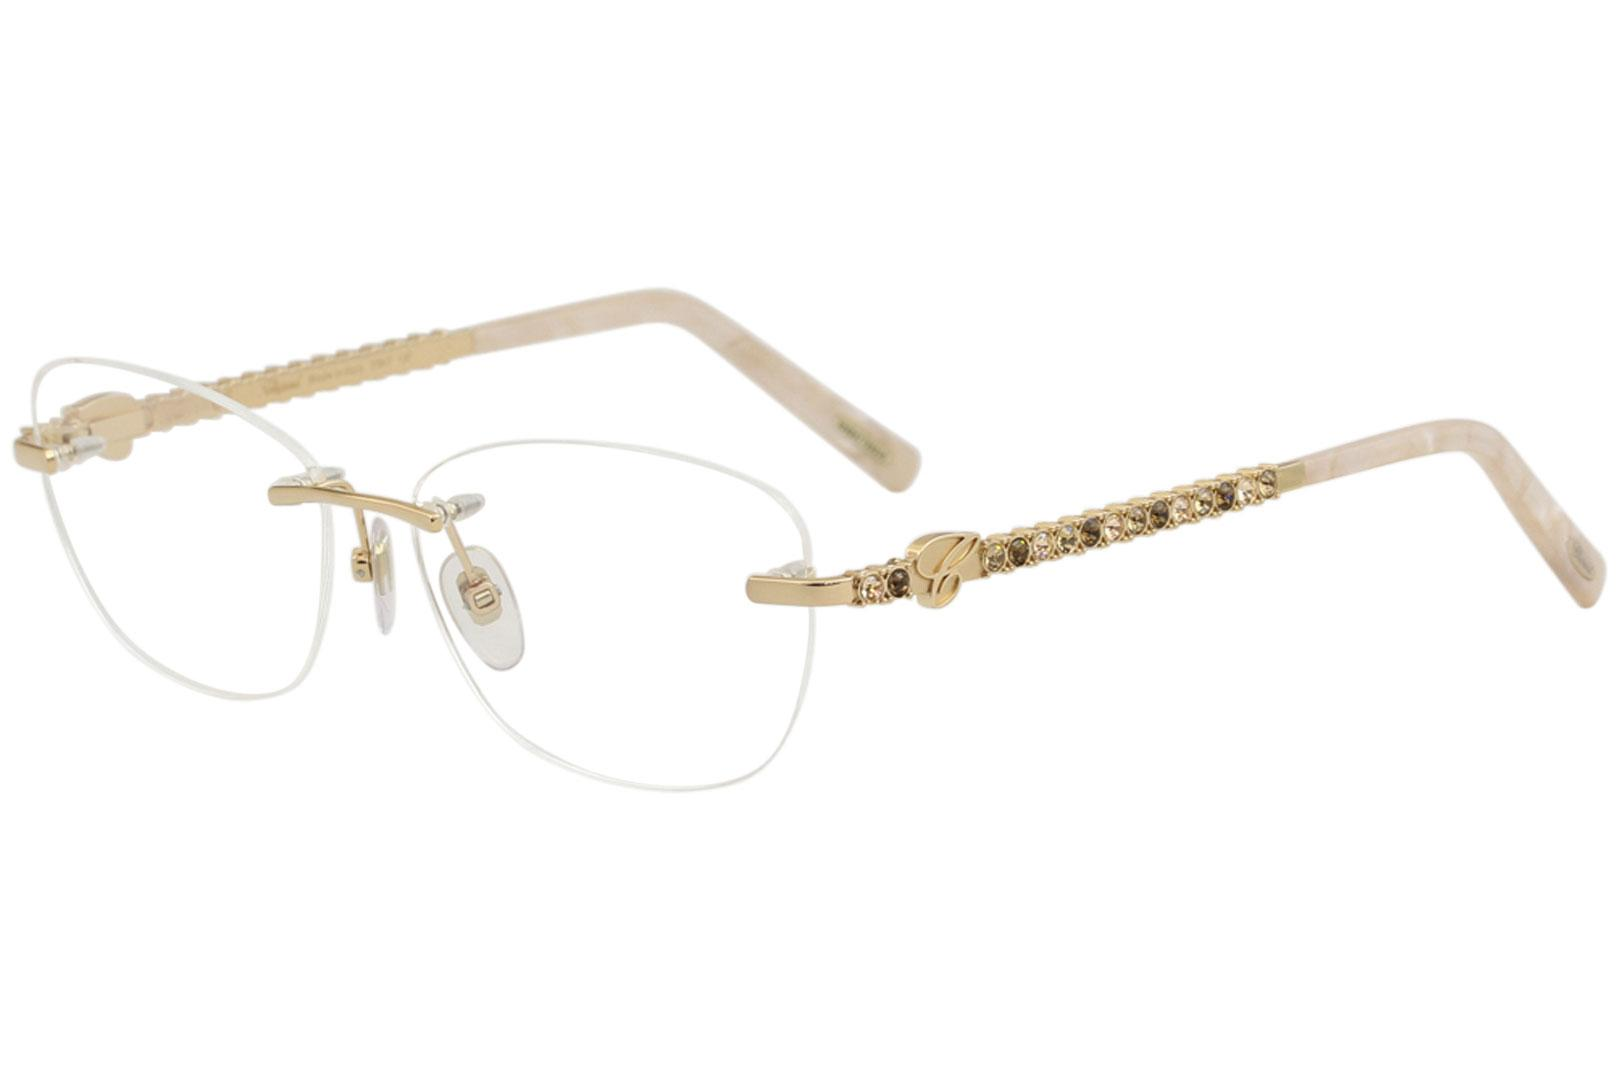 7983807eecdb Chopard Women's Eyeglasses VCHB51S VCHB/51/S Rimless Optical Frame by  Chopard